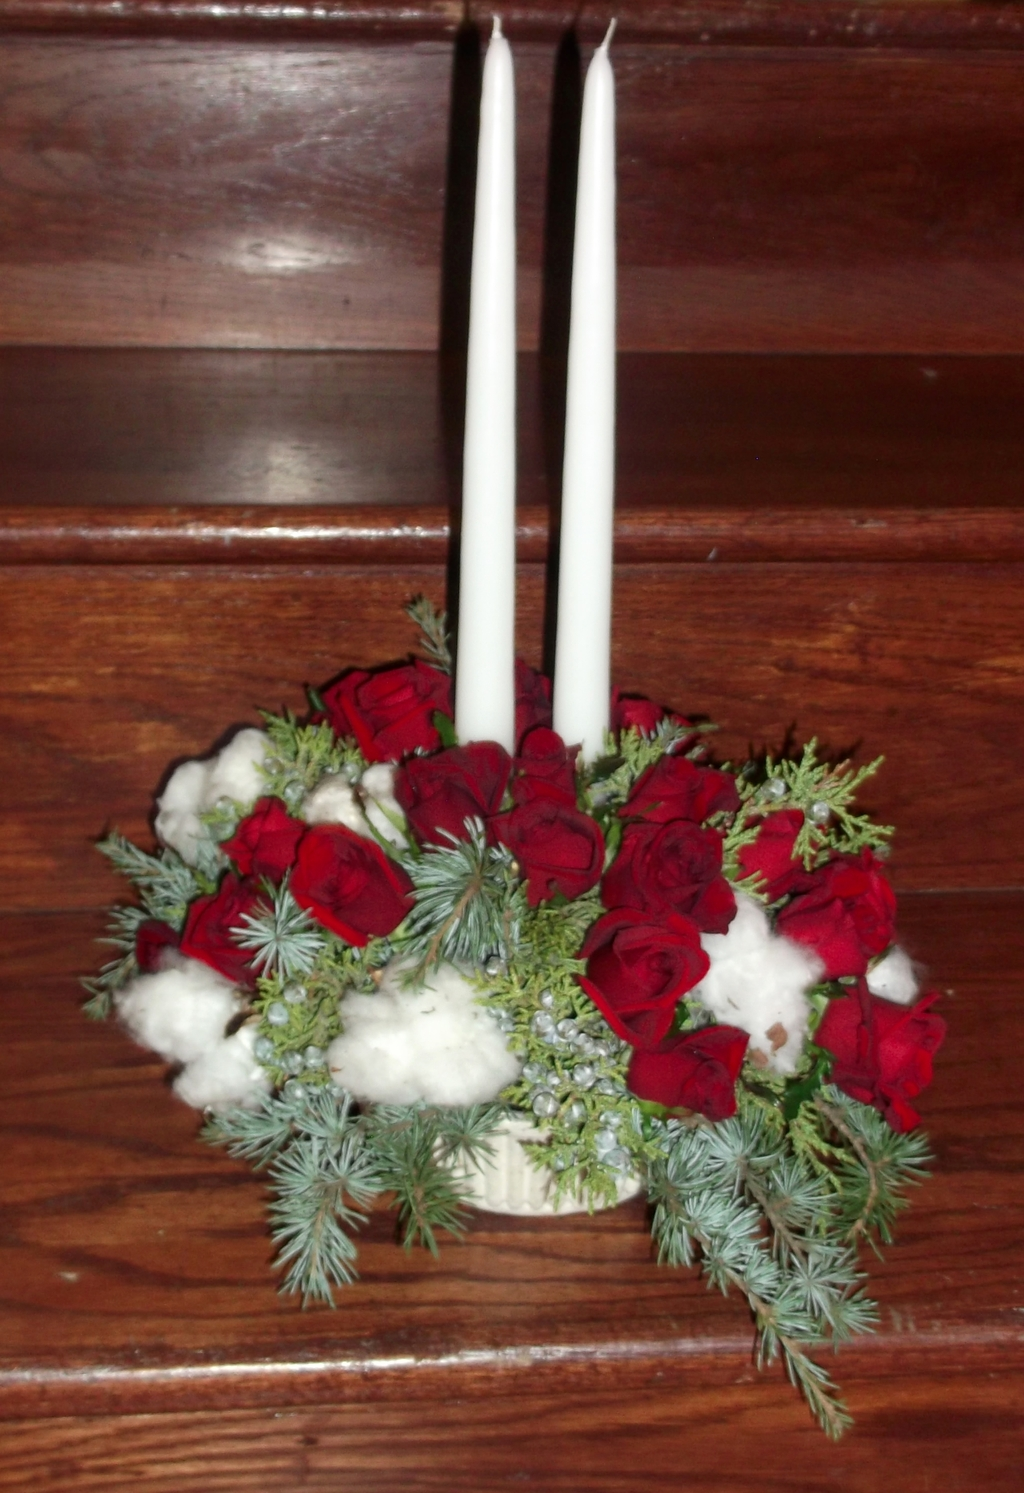 Rose and greens candle centerpiece